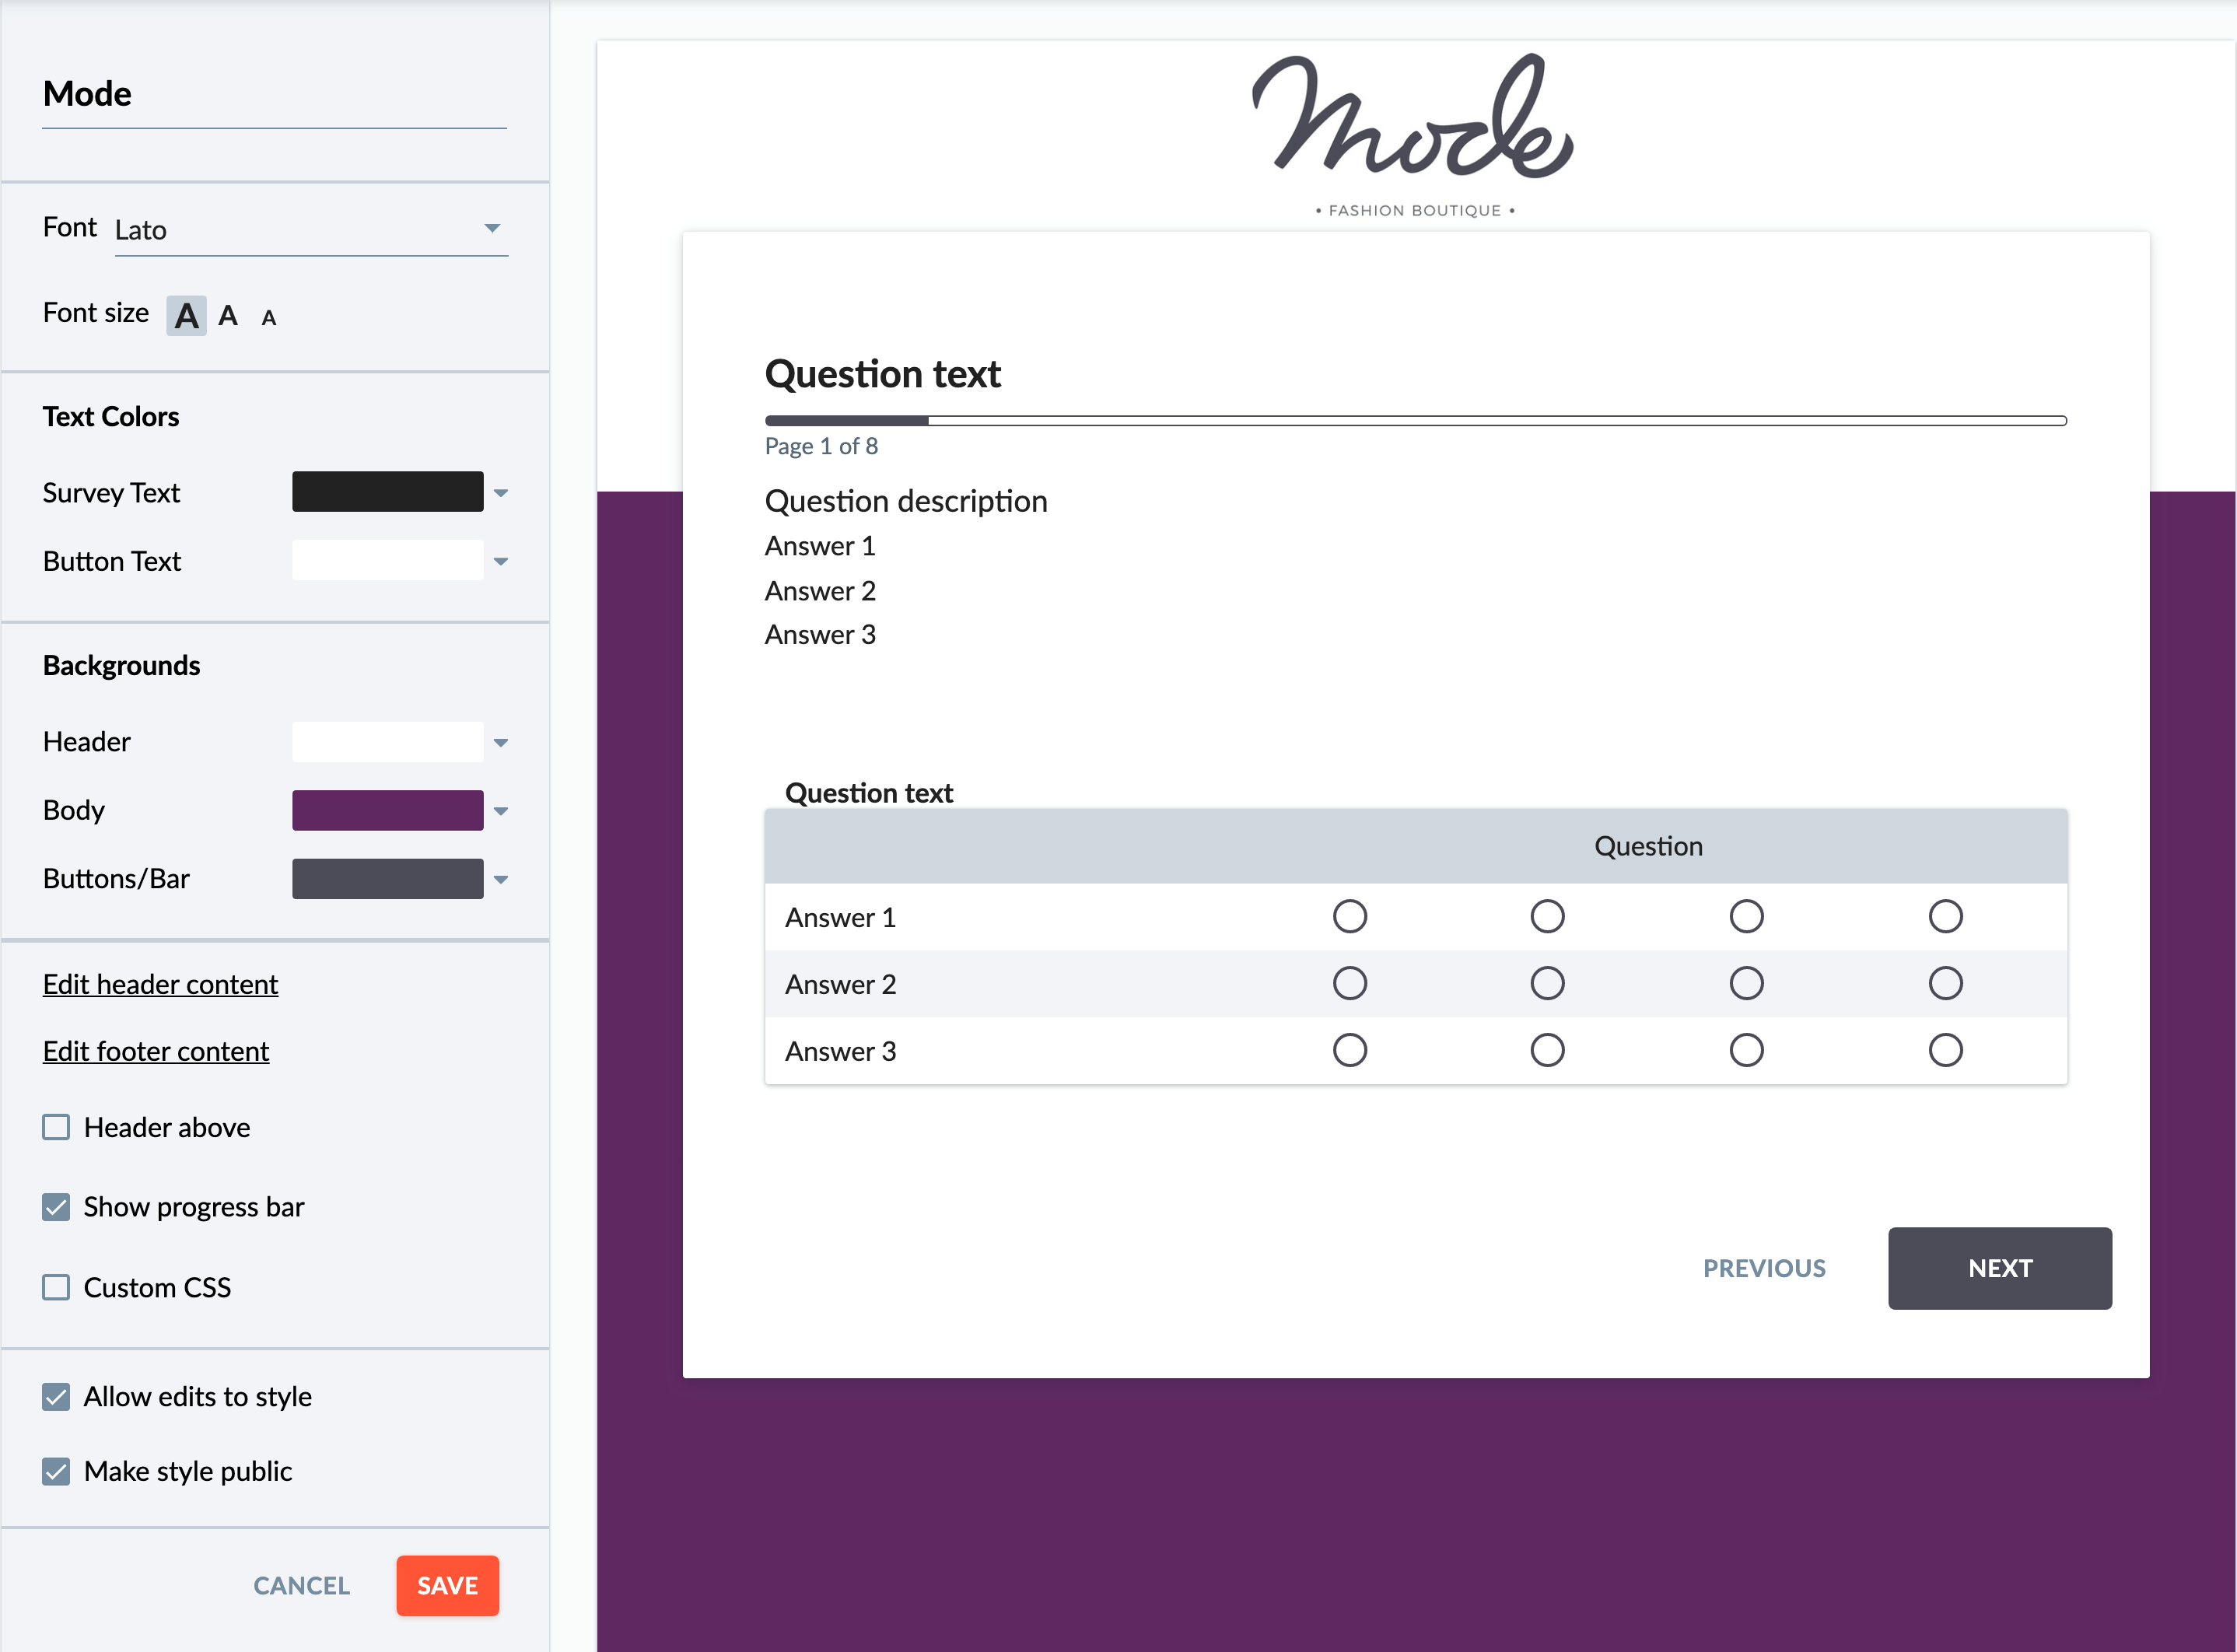 Customizable style templates to reflect your brand.